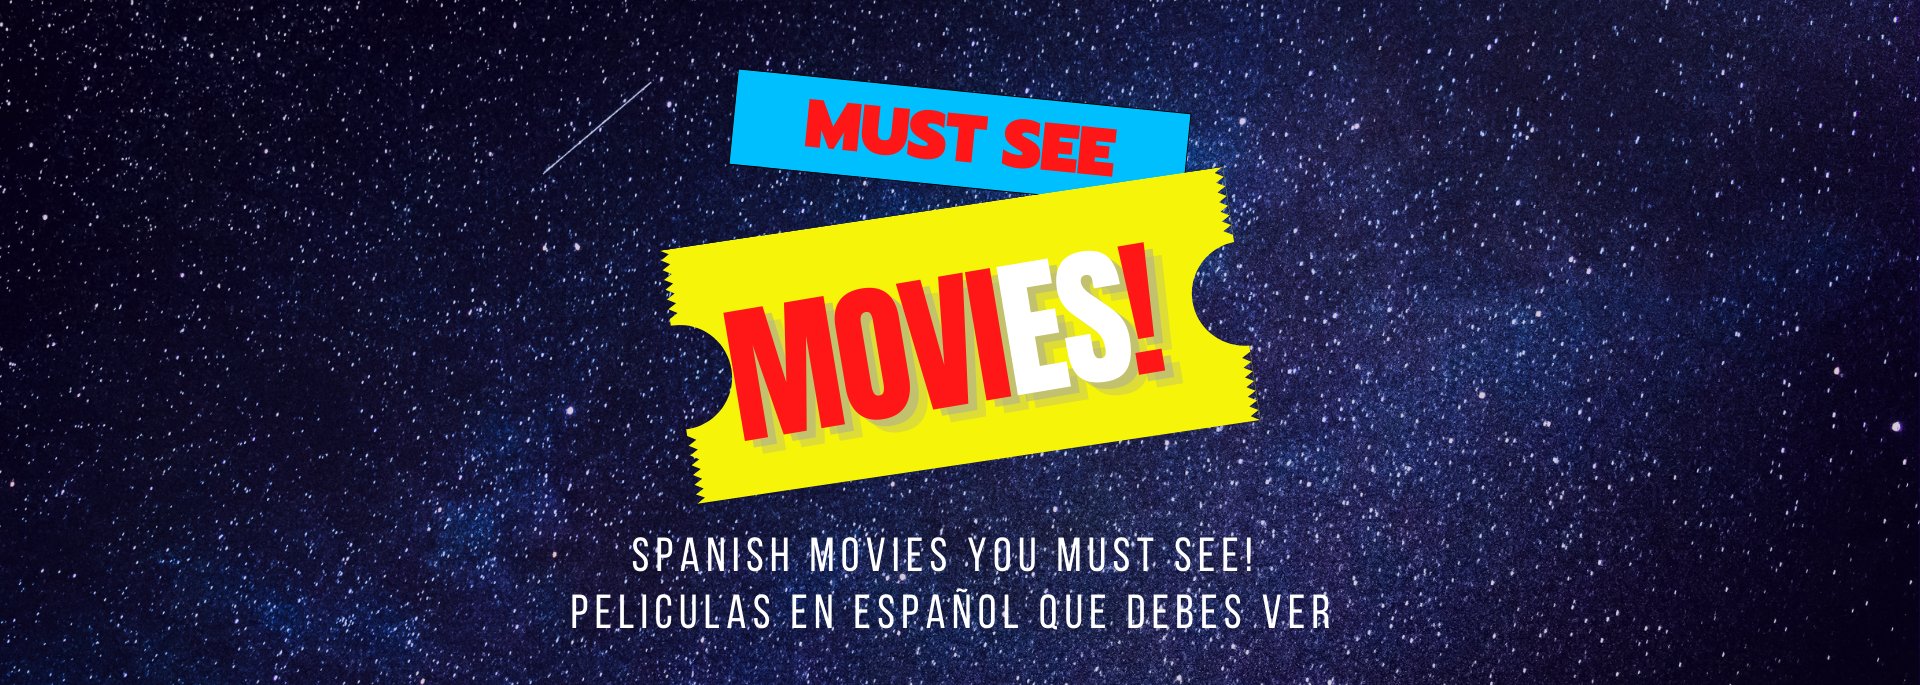 #MUST SEE MOVIES! channel